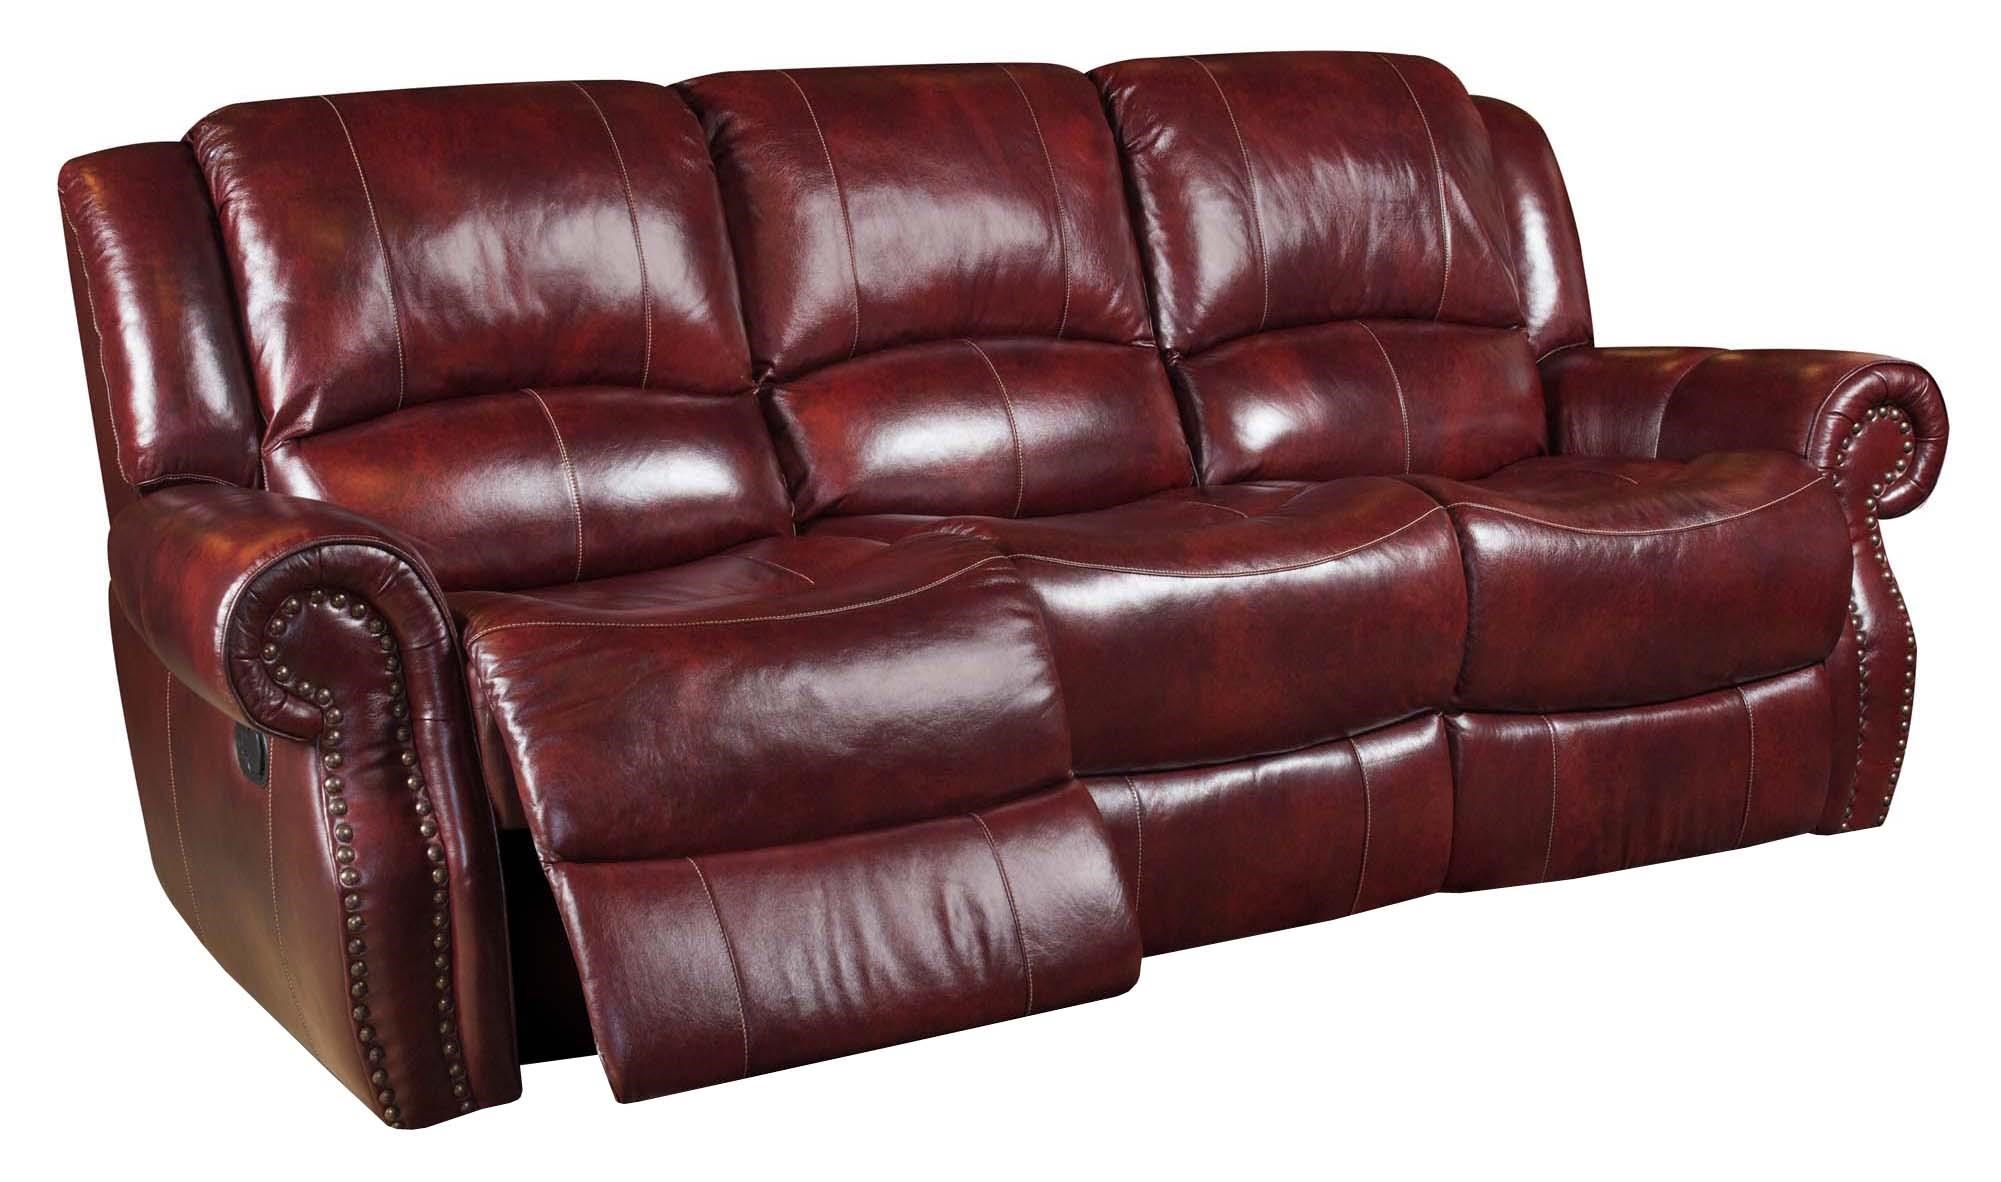 Corinthian Alexander CORI 99901 30,OXBLOOD Alexander Leather Reclining Sofa Part 63